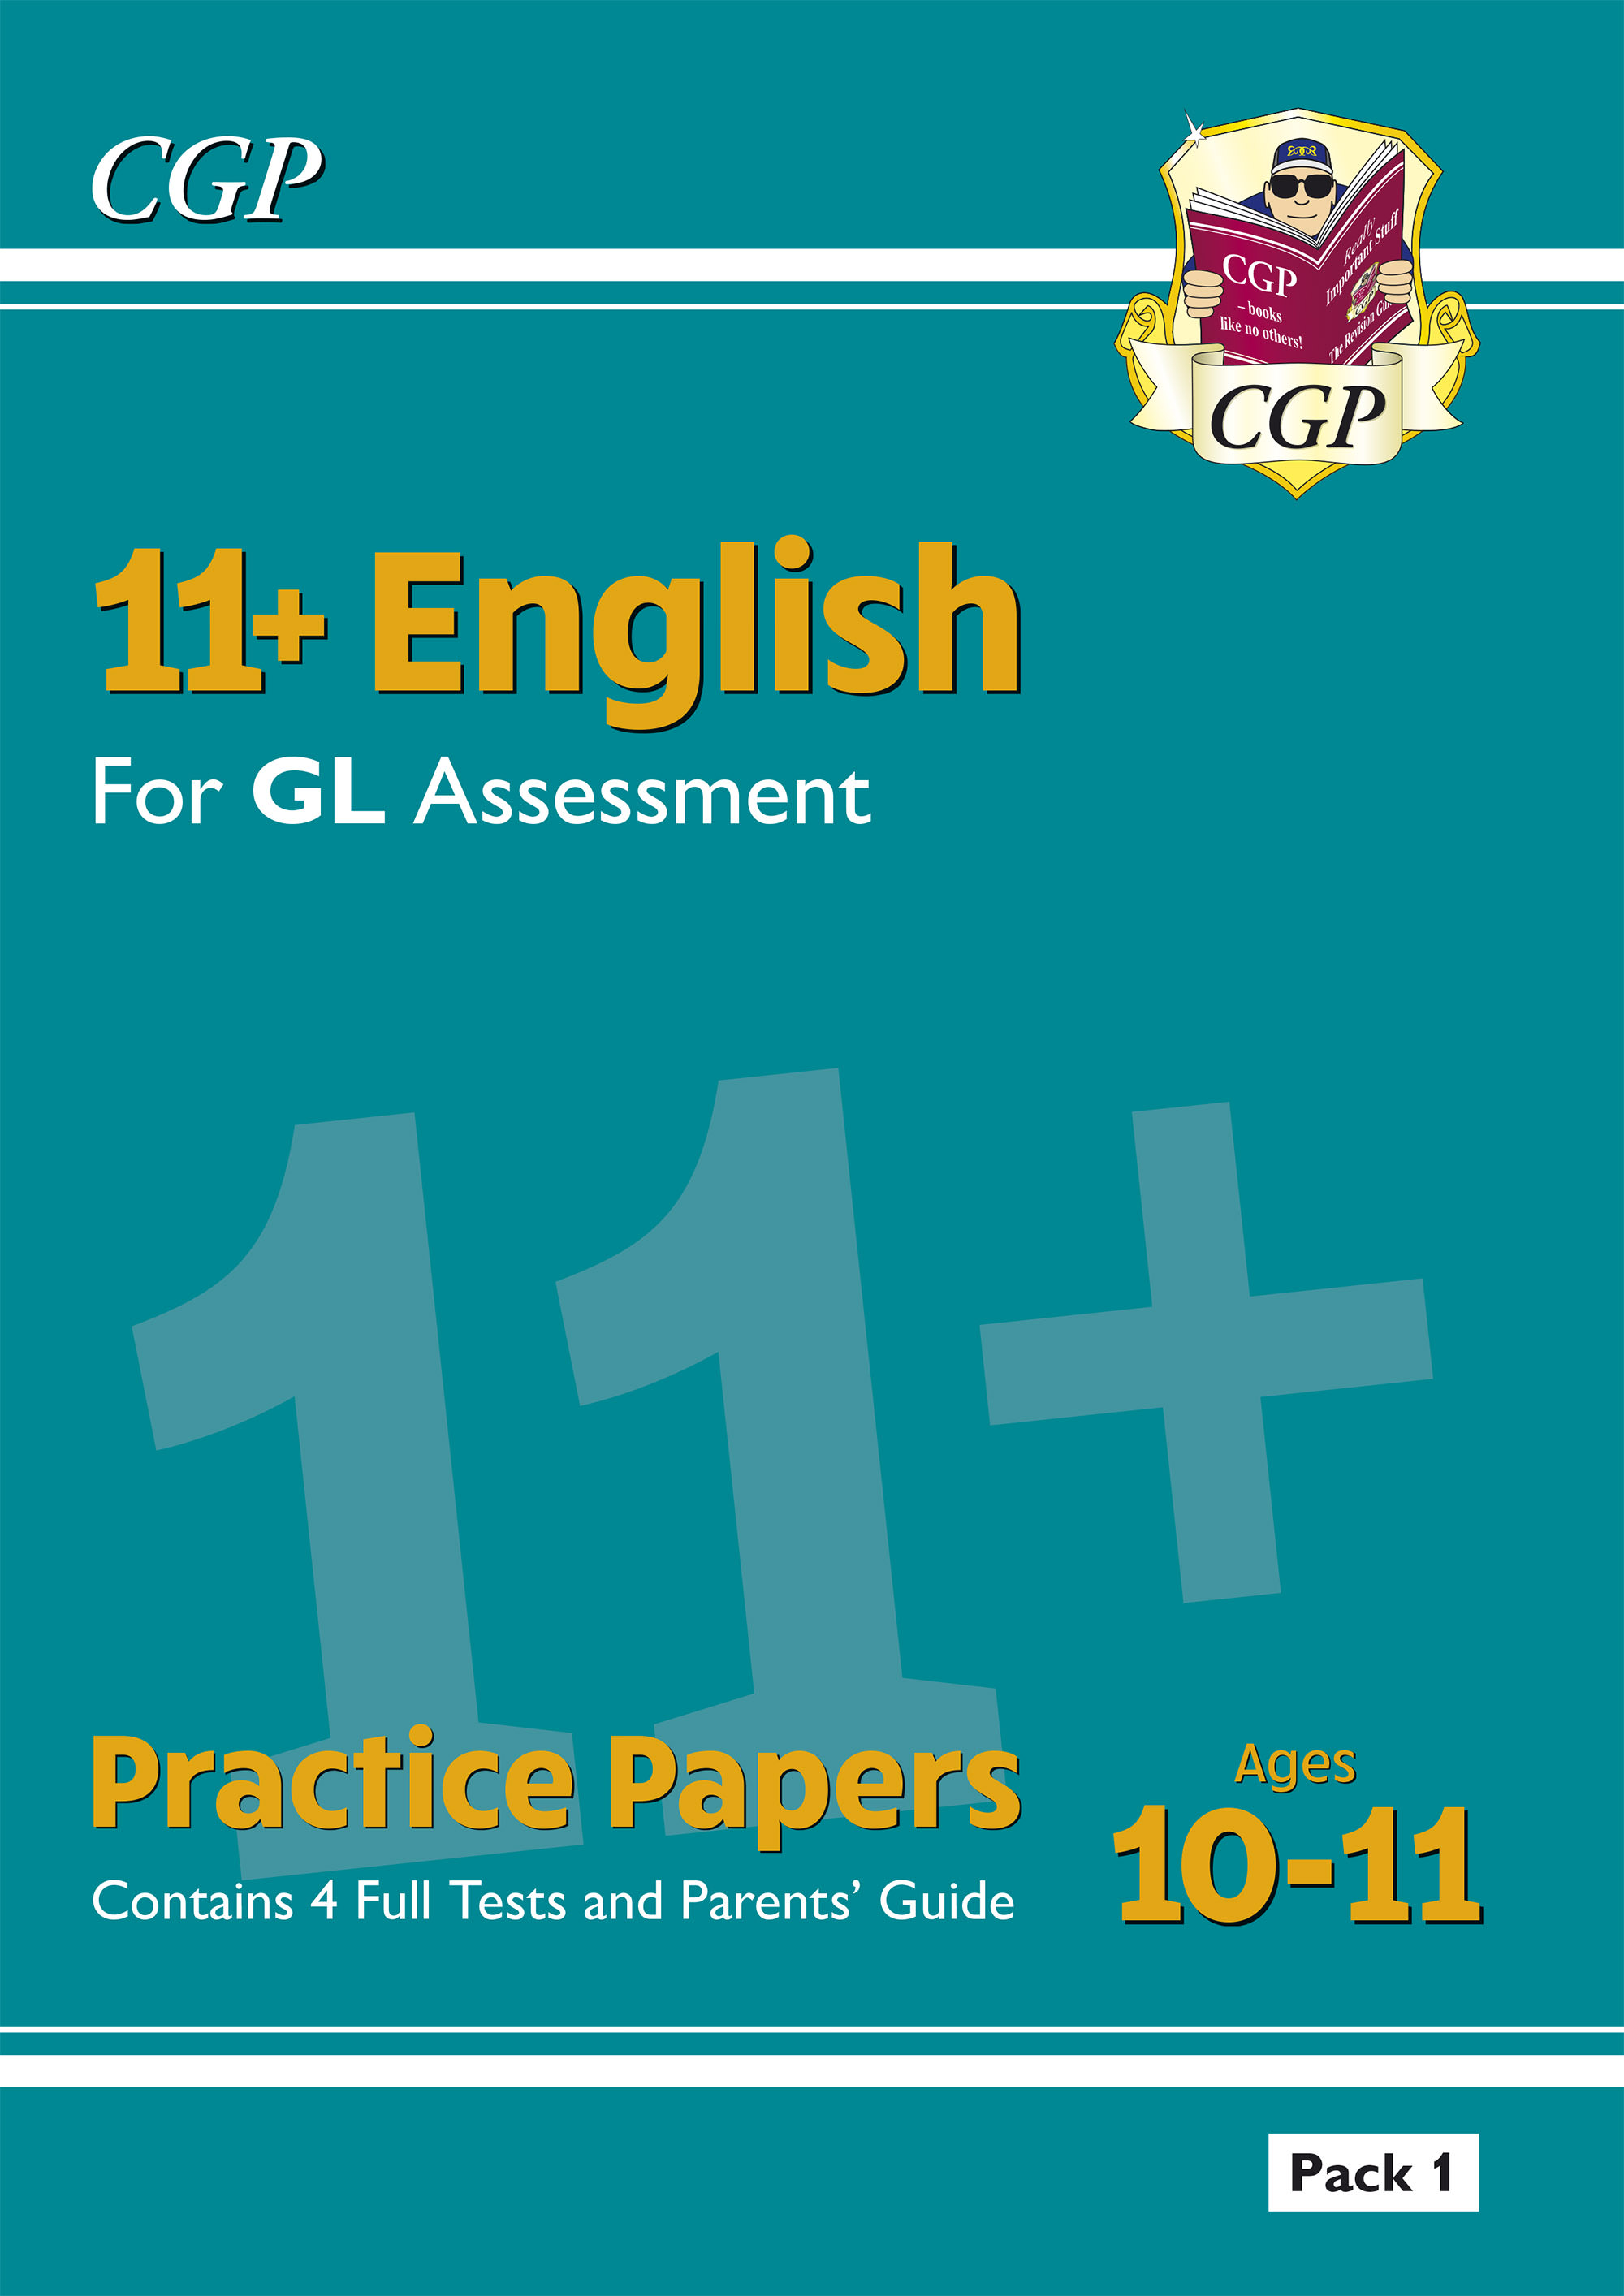 EHTE2DK - New 11+ GL English Practice Papers - Ages 10-11 (with Parents' Guide)